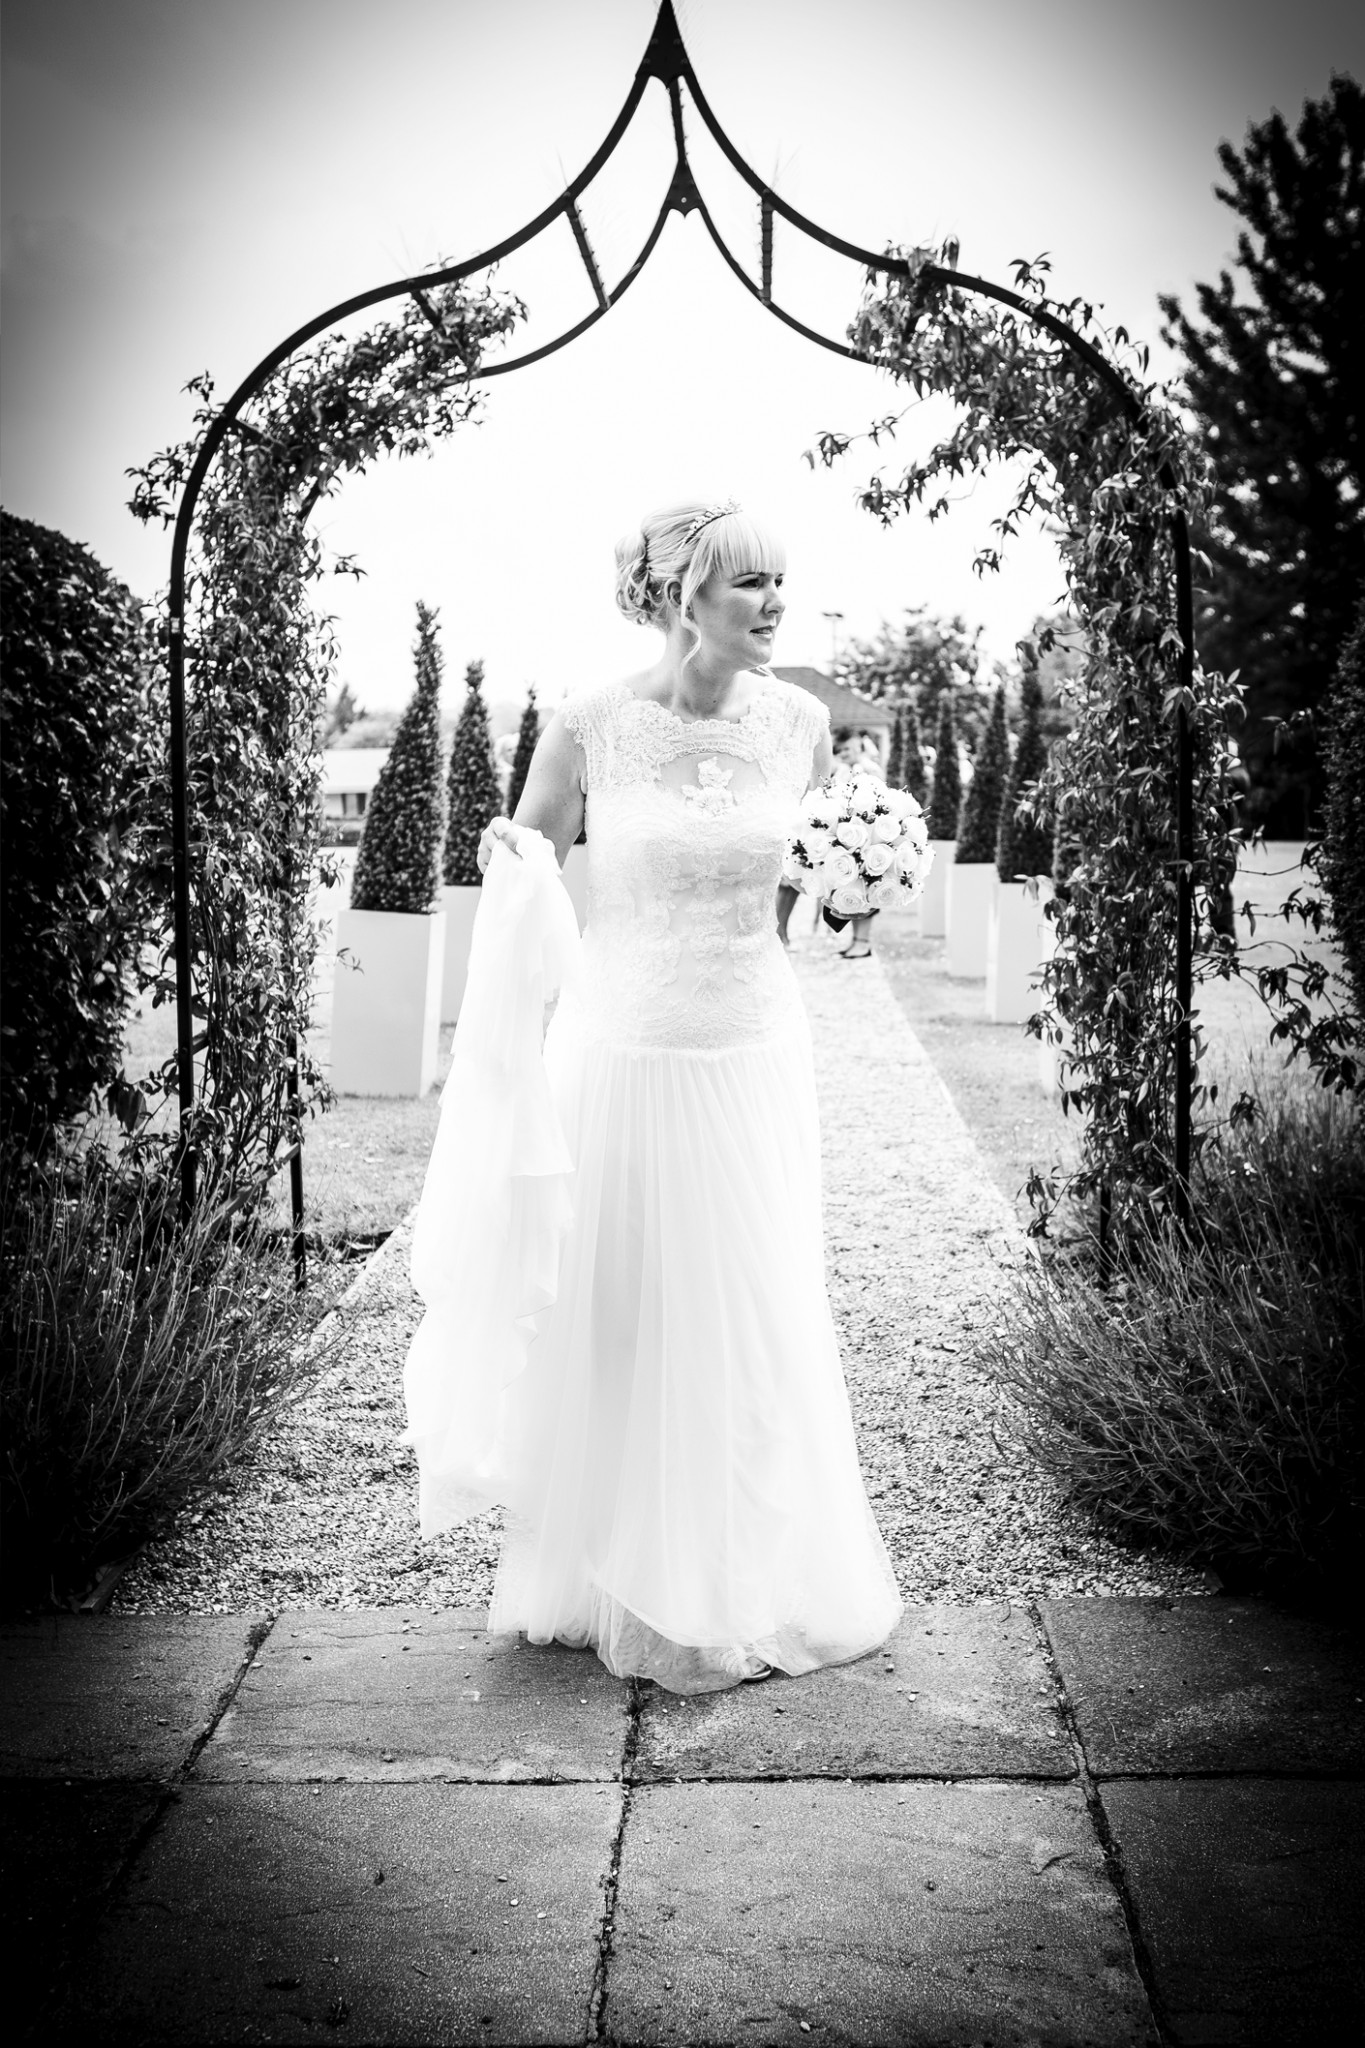 photography-of-the-bride-after-the-wedding-ceremony-at-cranage-hall-cheshire